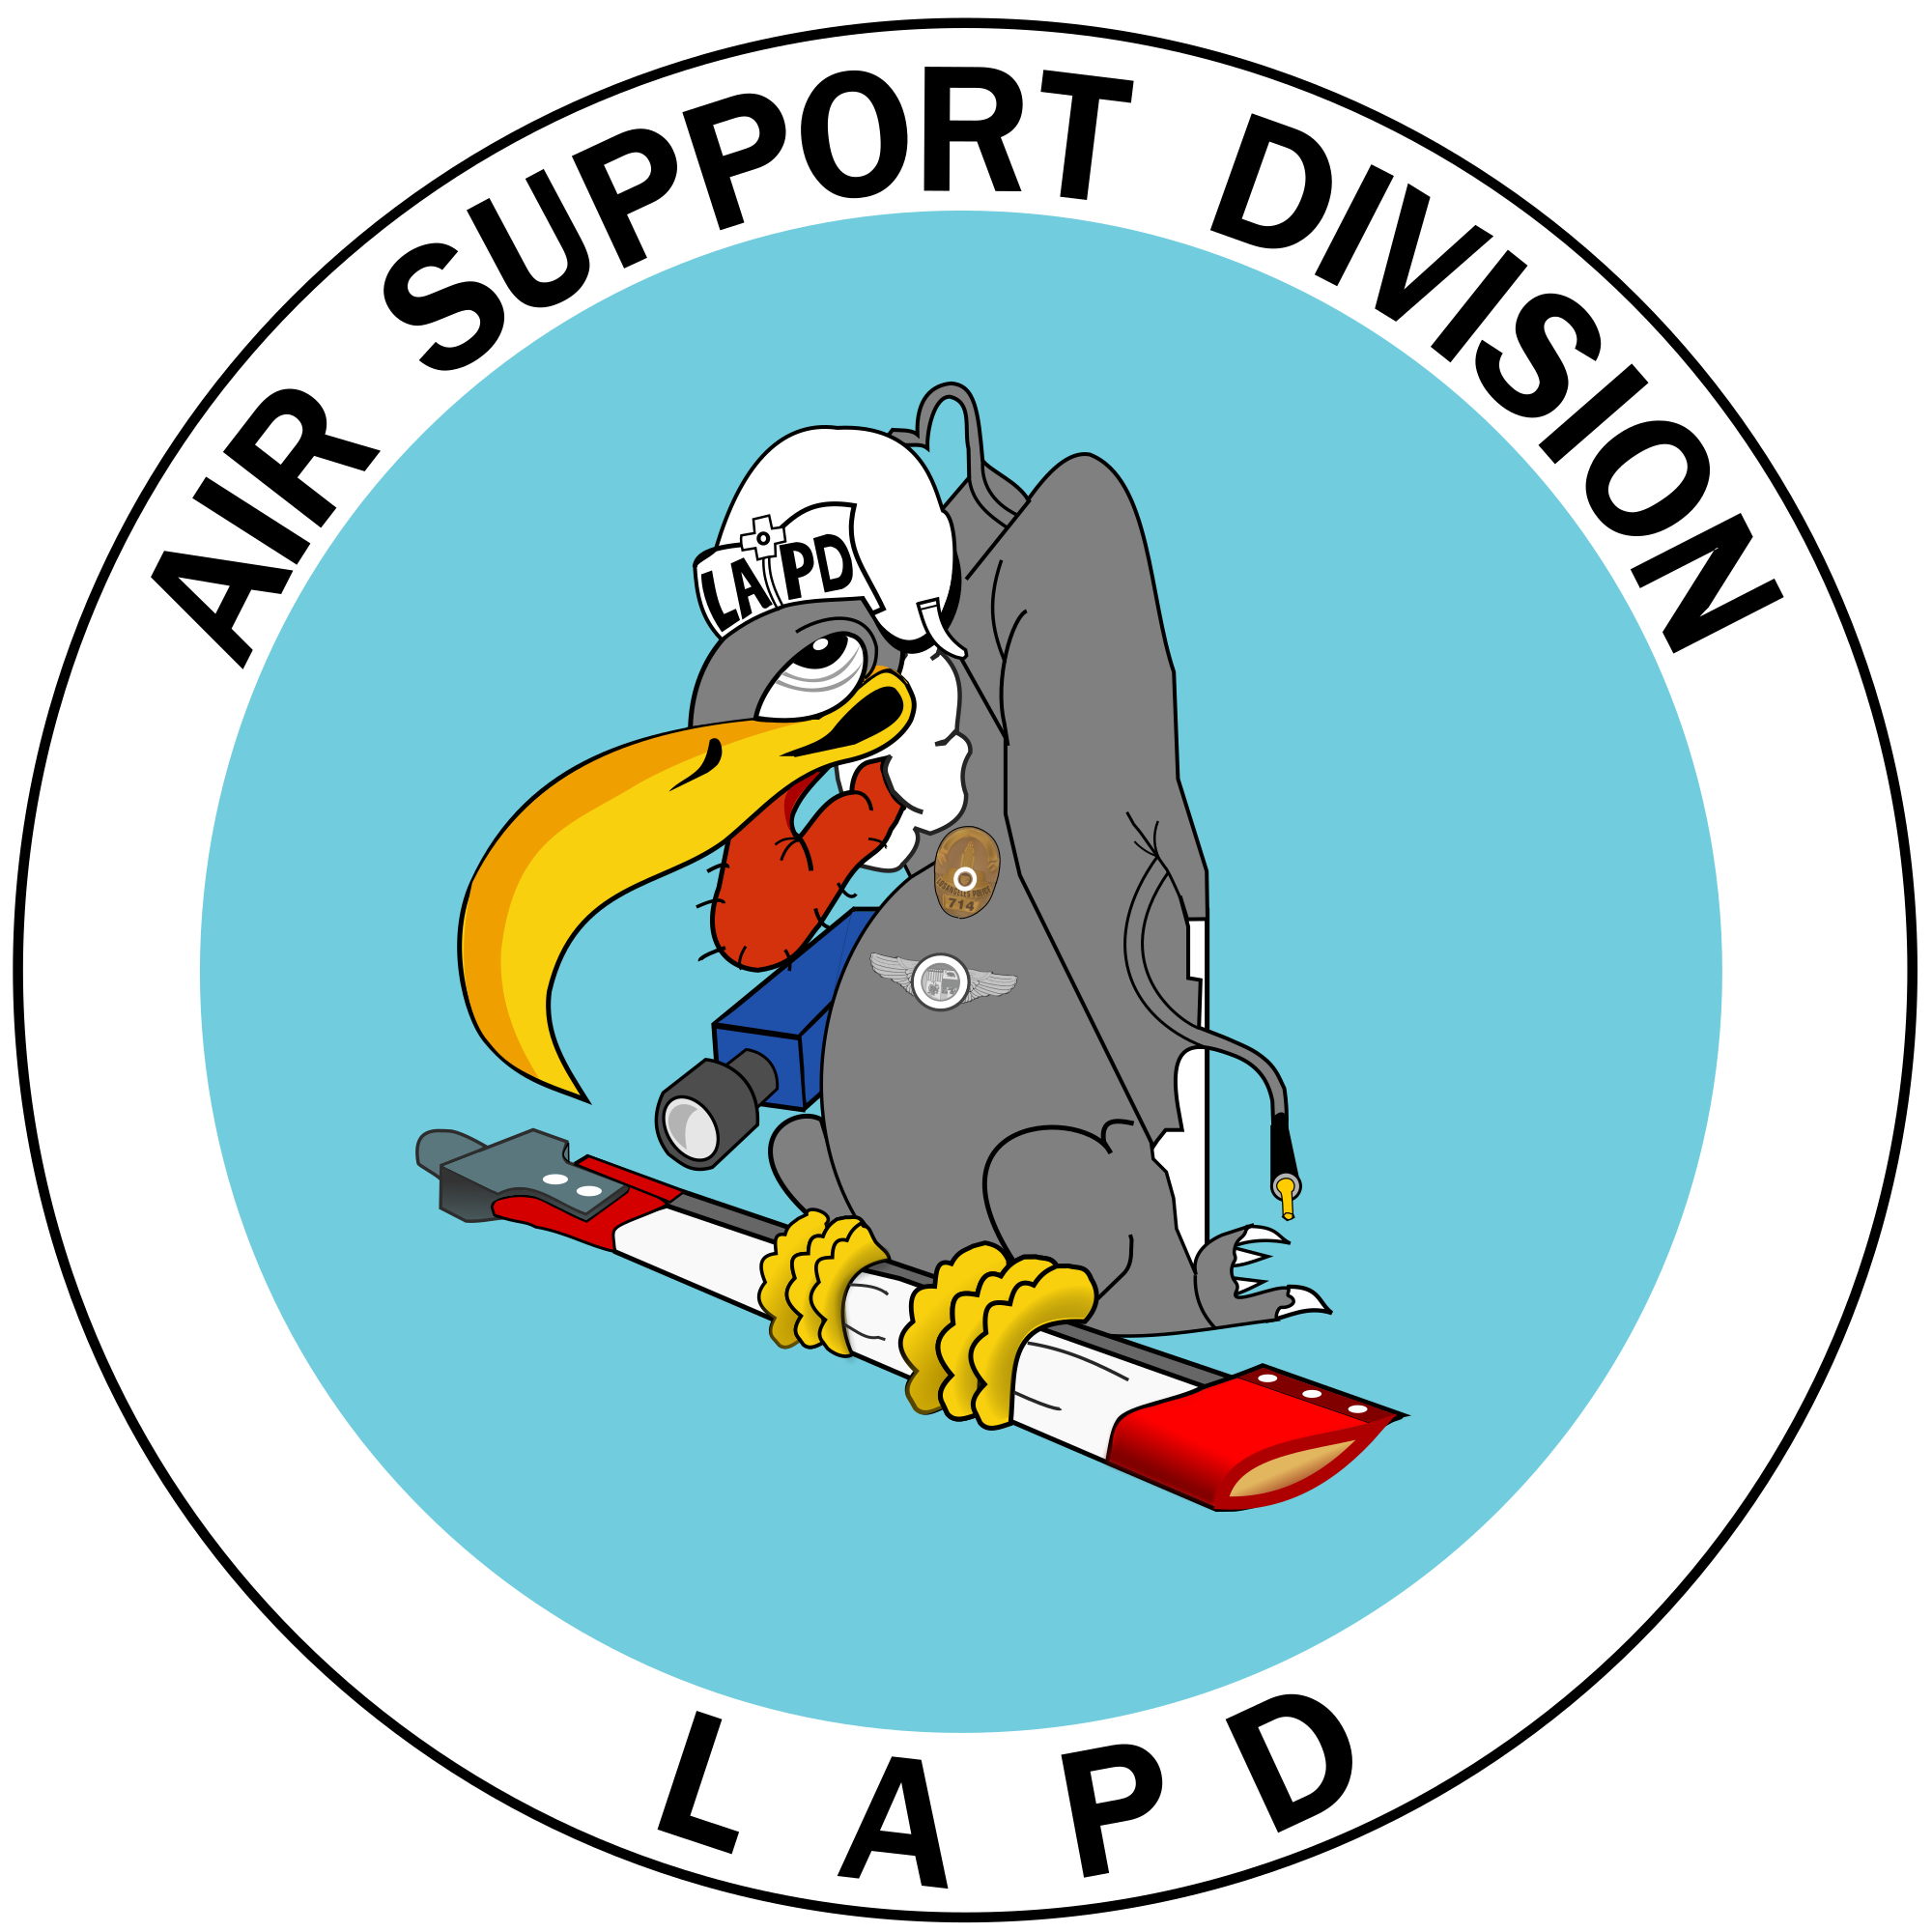 Lapd air support division. Pilot clipart airplane crash